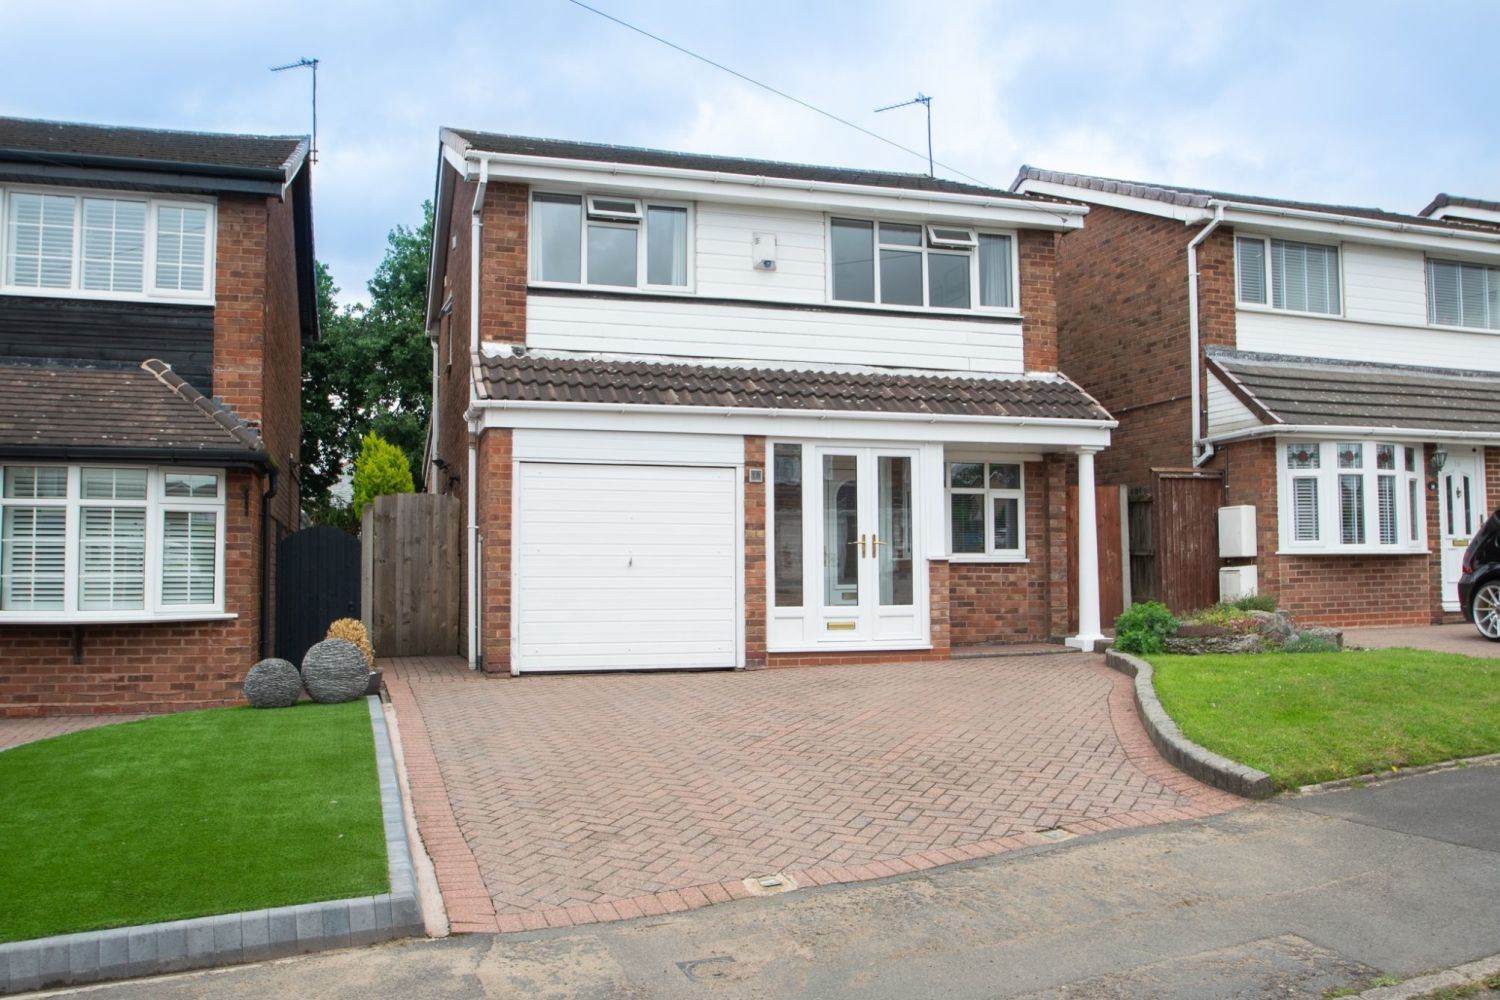 3 bed detached for sale in Clyde Avenue, Halesowen 1